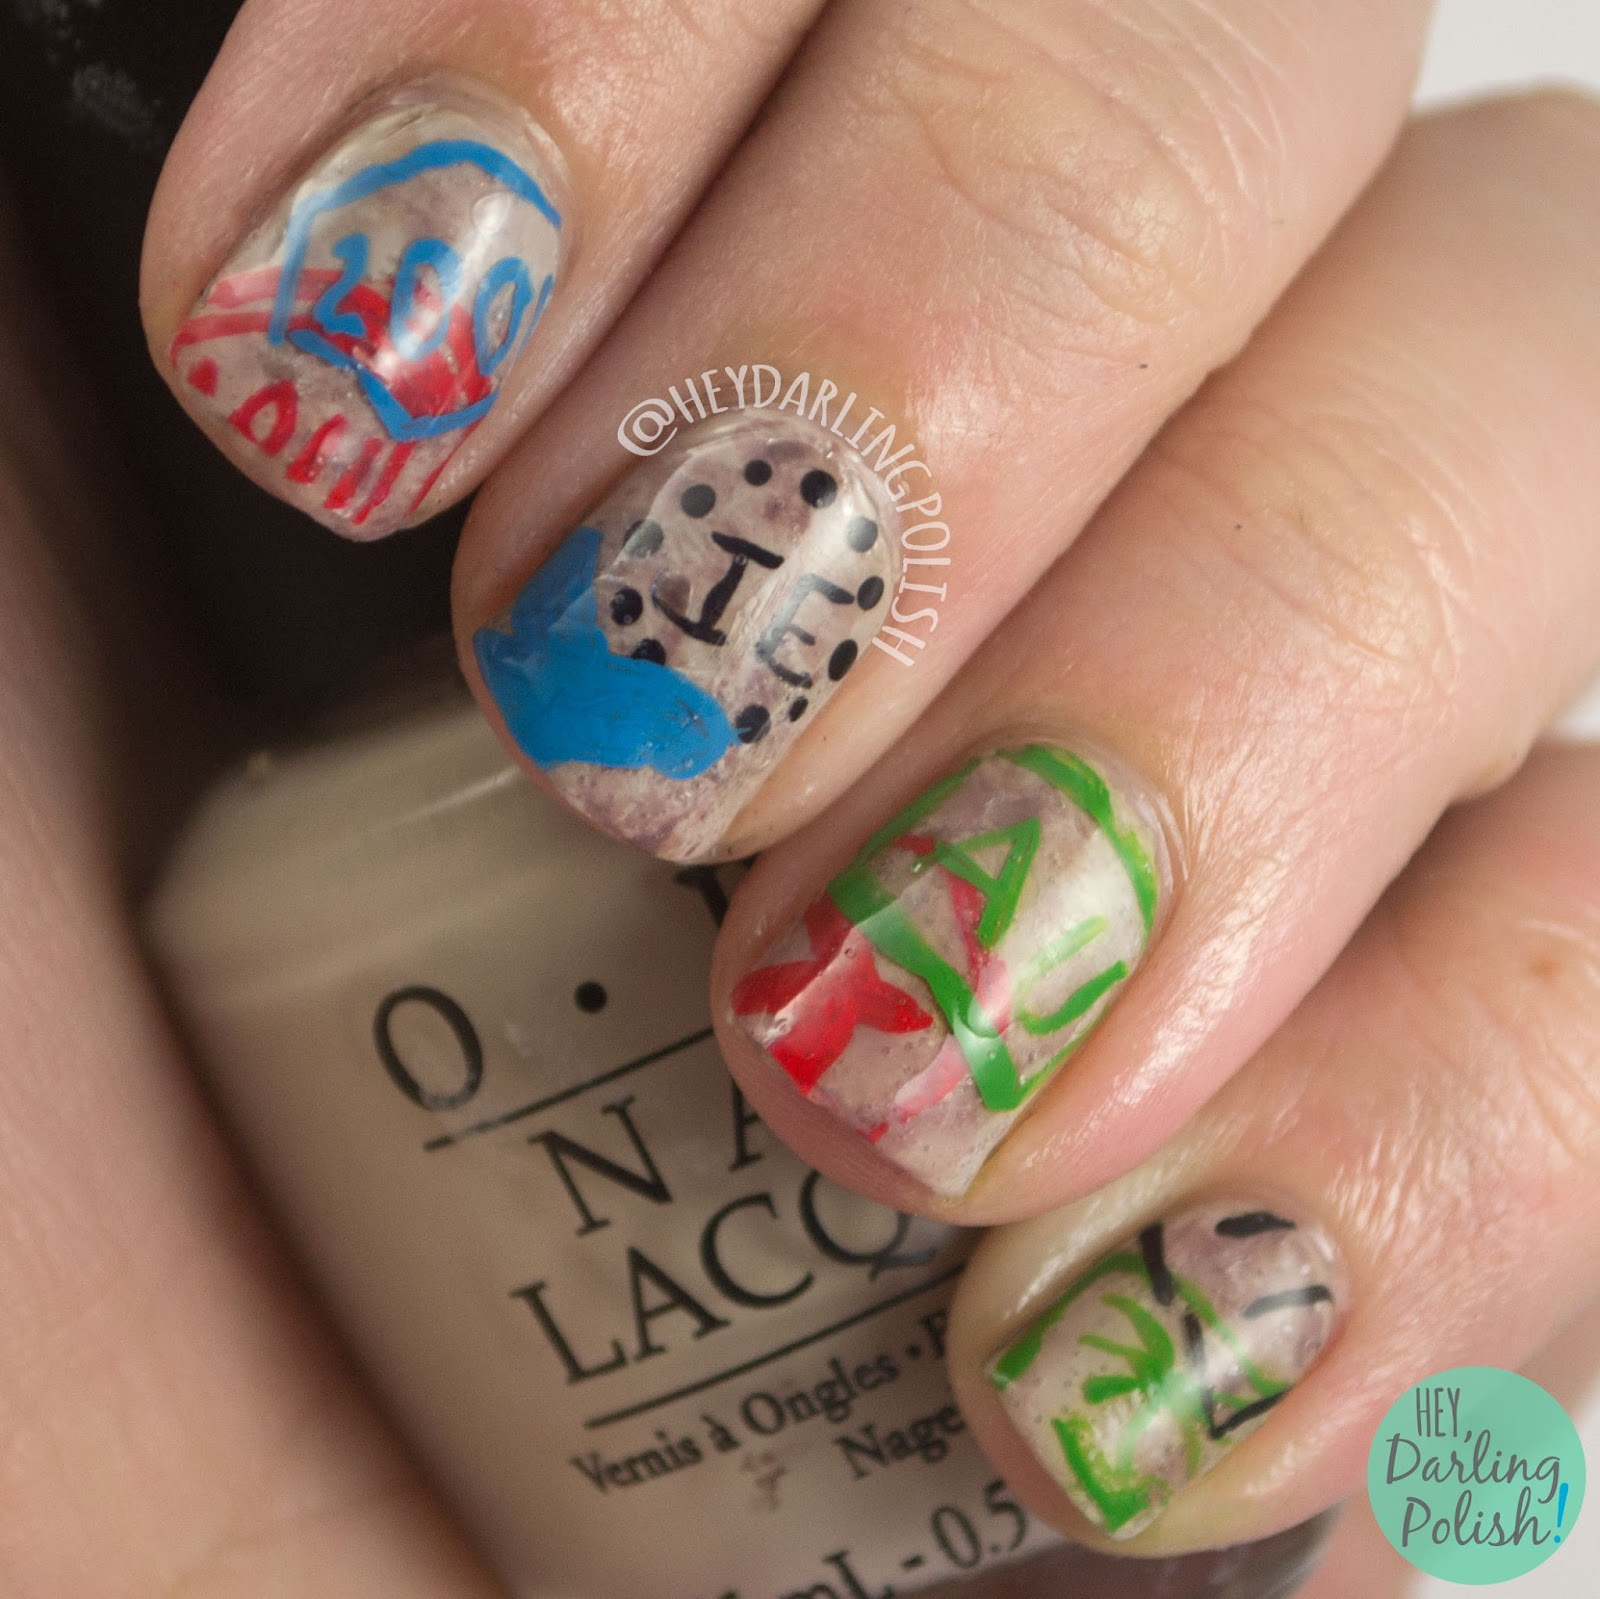 nails, nail art, nail polish, travel, stamps, travel stamps, hey darling polish, theme buffet, decals,